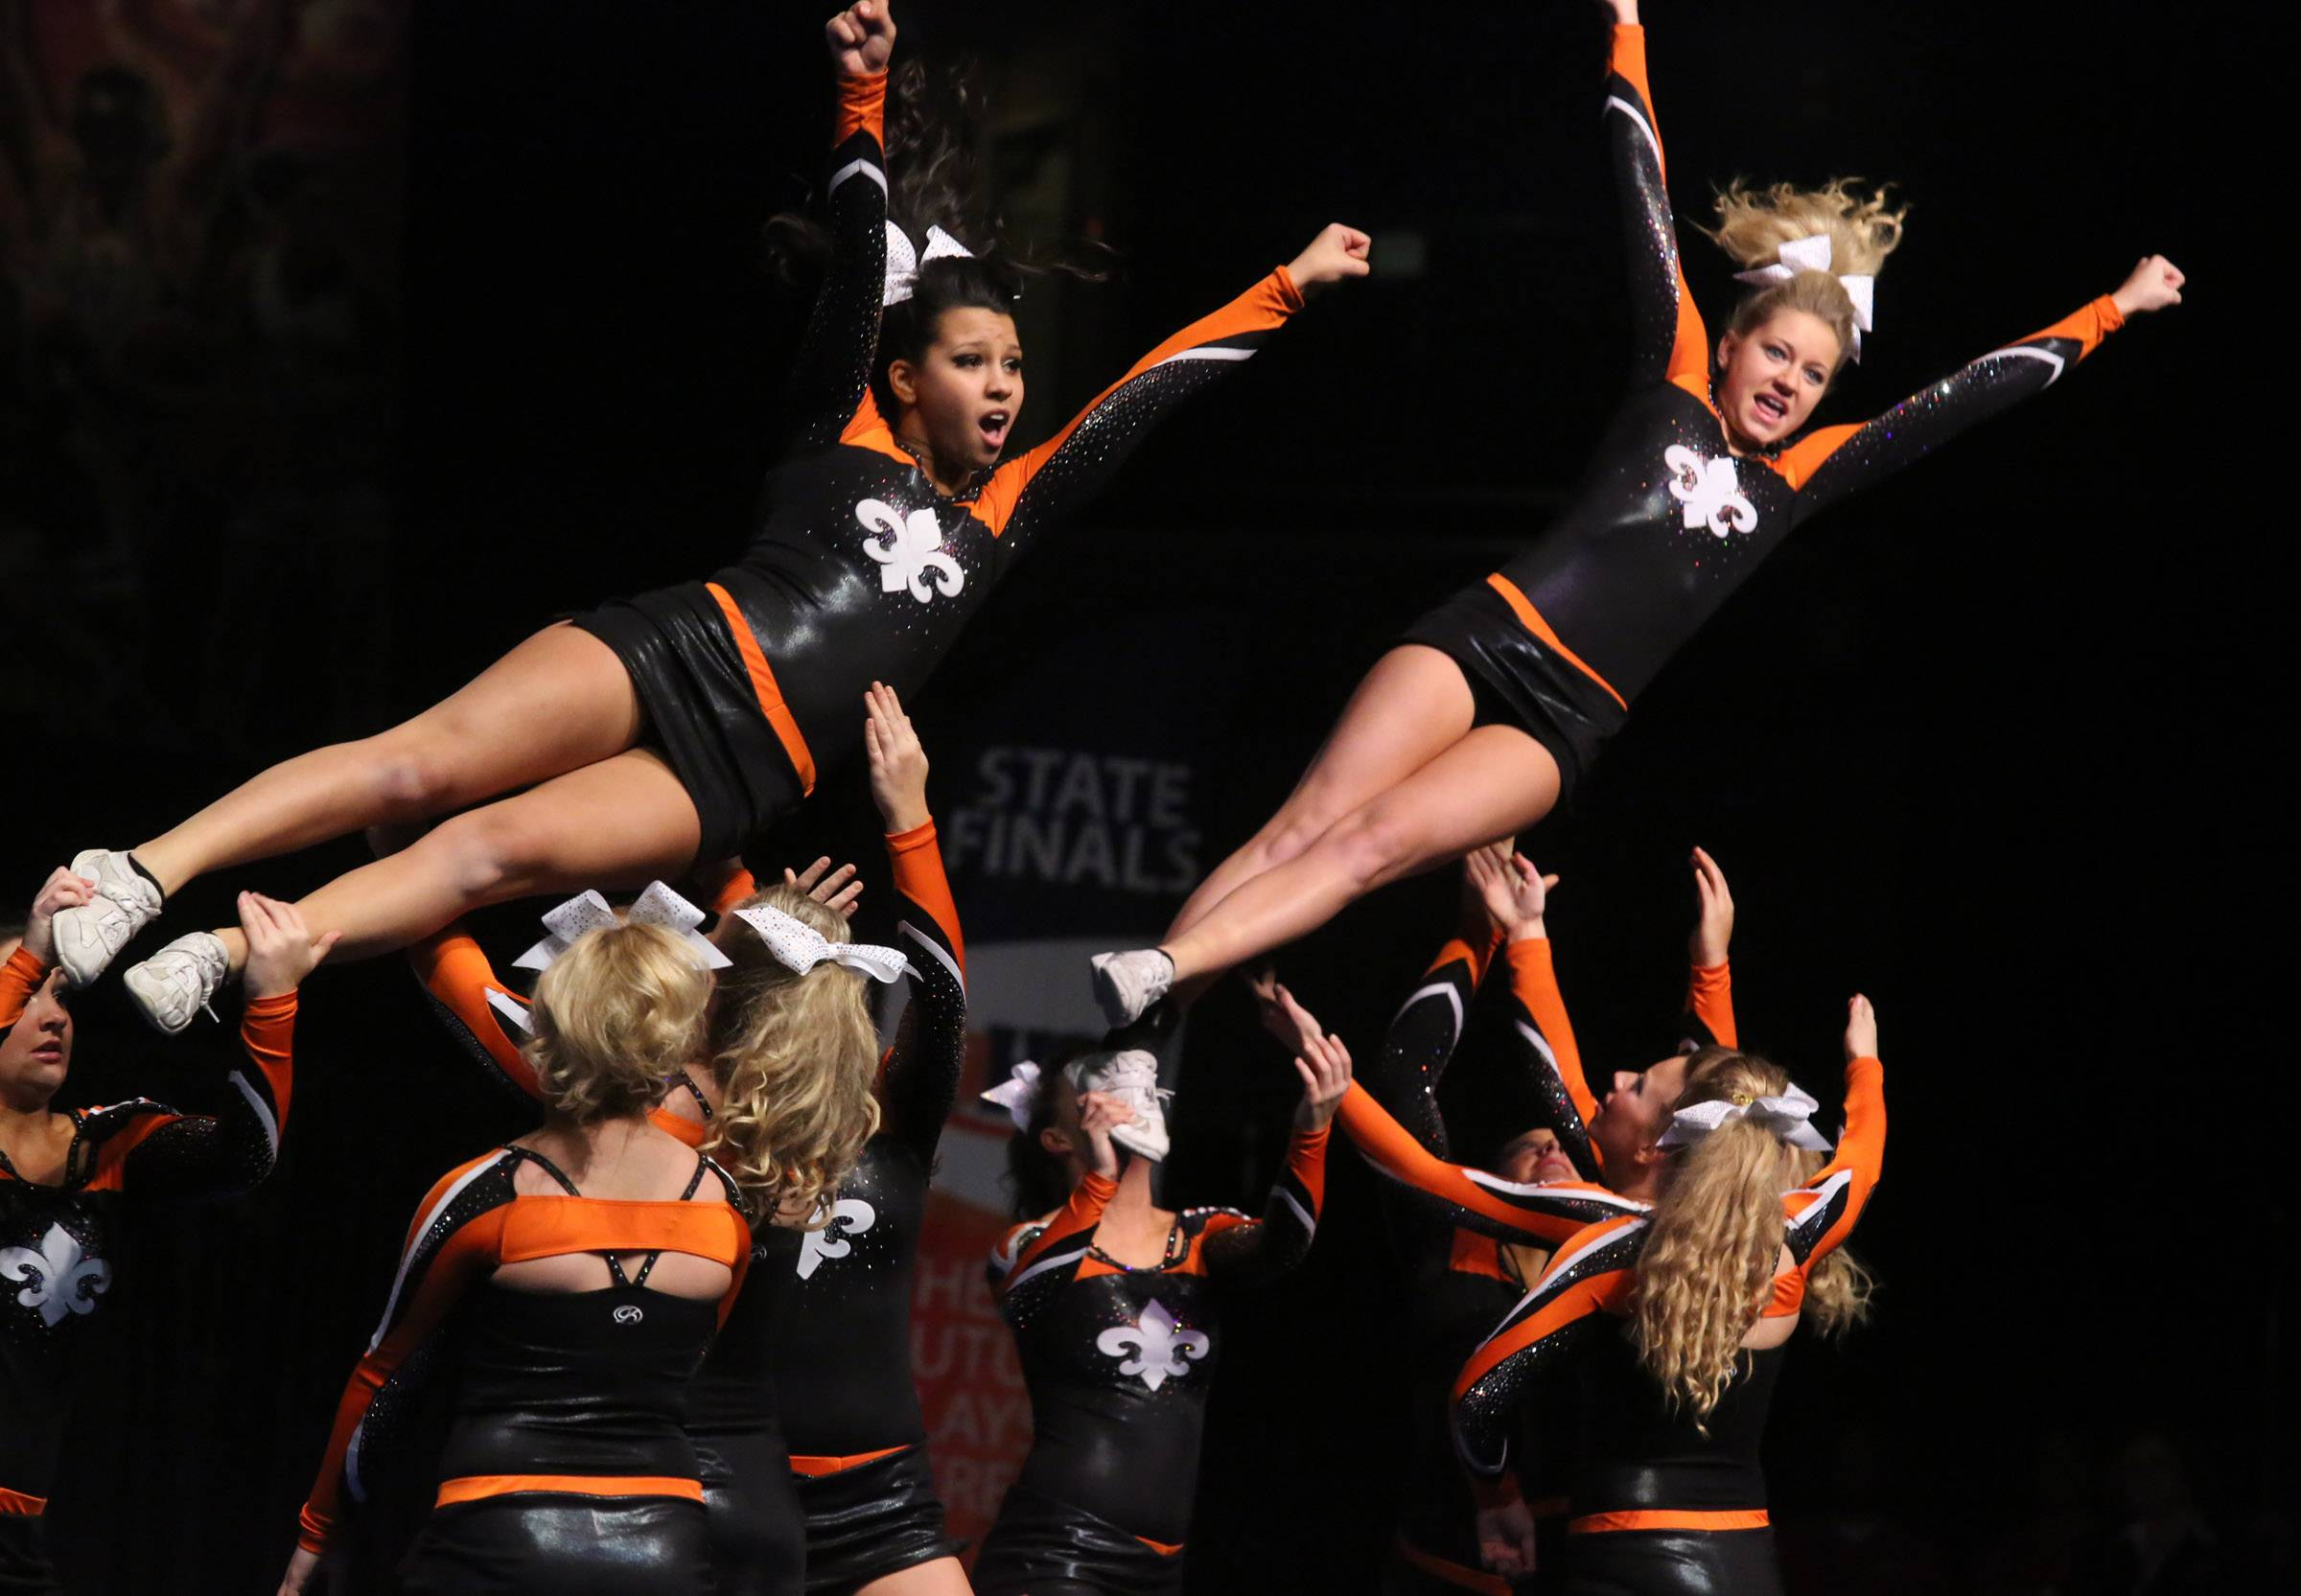 St. Charles East High School's cheer team performs in the large team category at the IHSA state finals on Saturday in Bloomington.